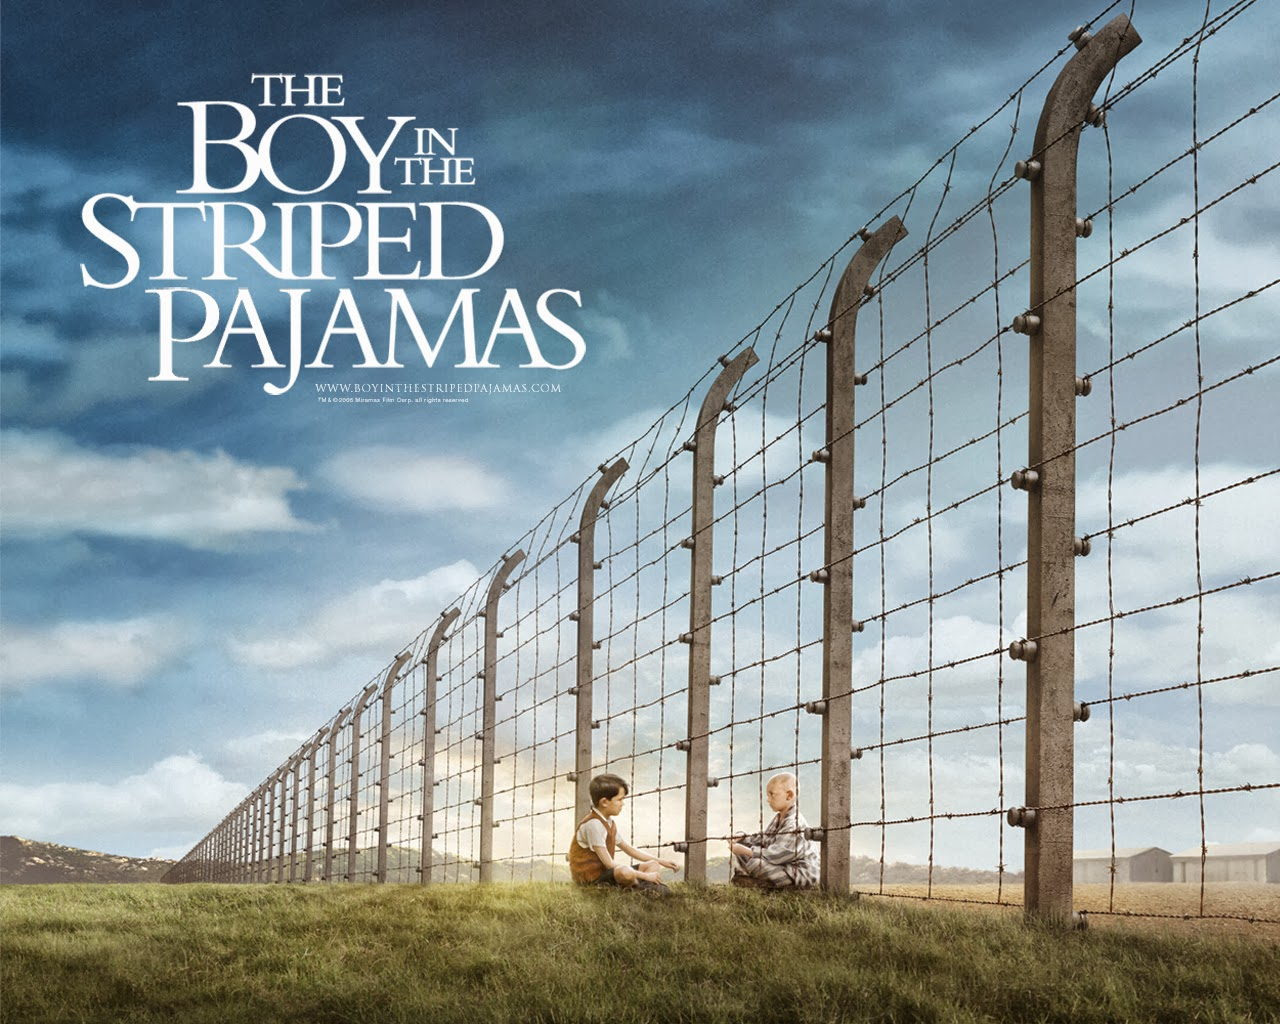 The Boy in the Striped Pajamas Summary